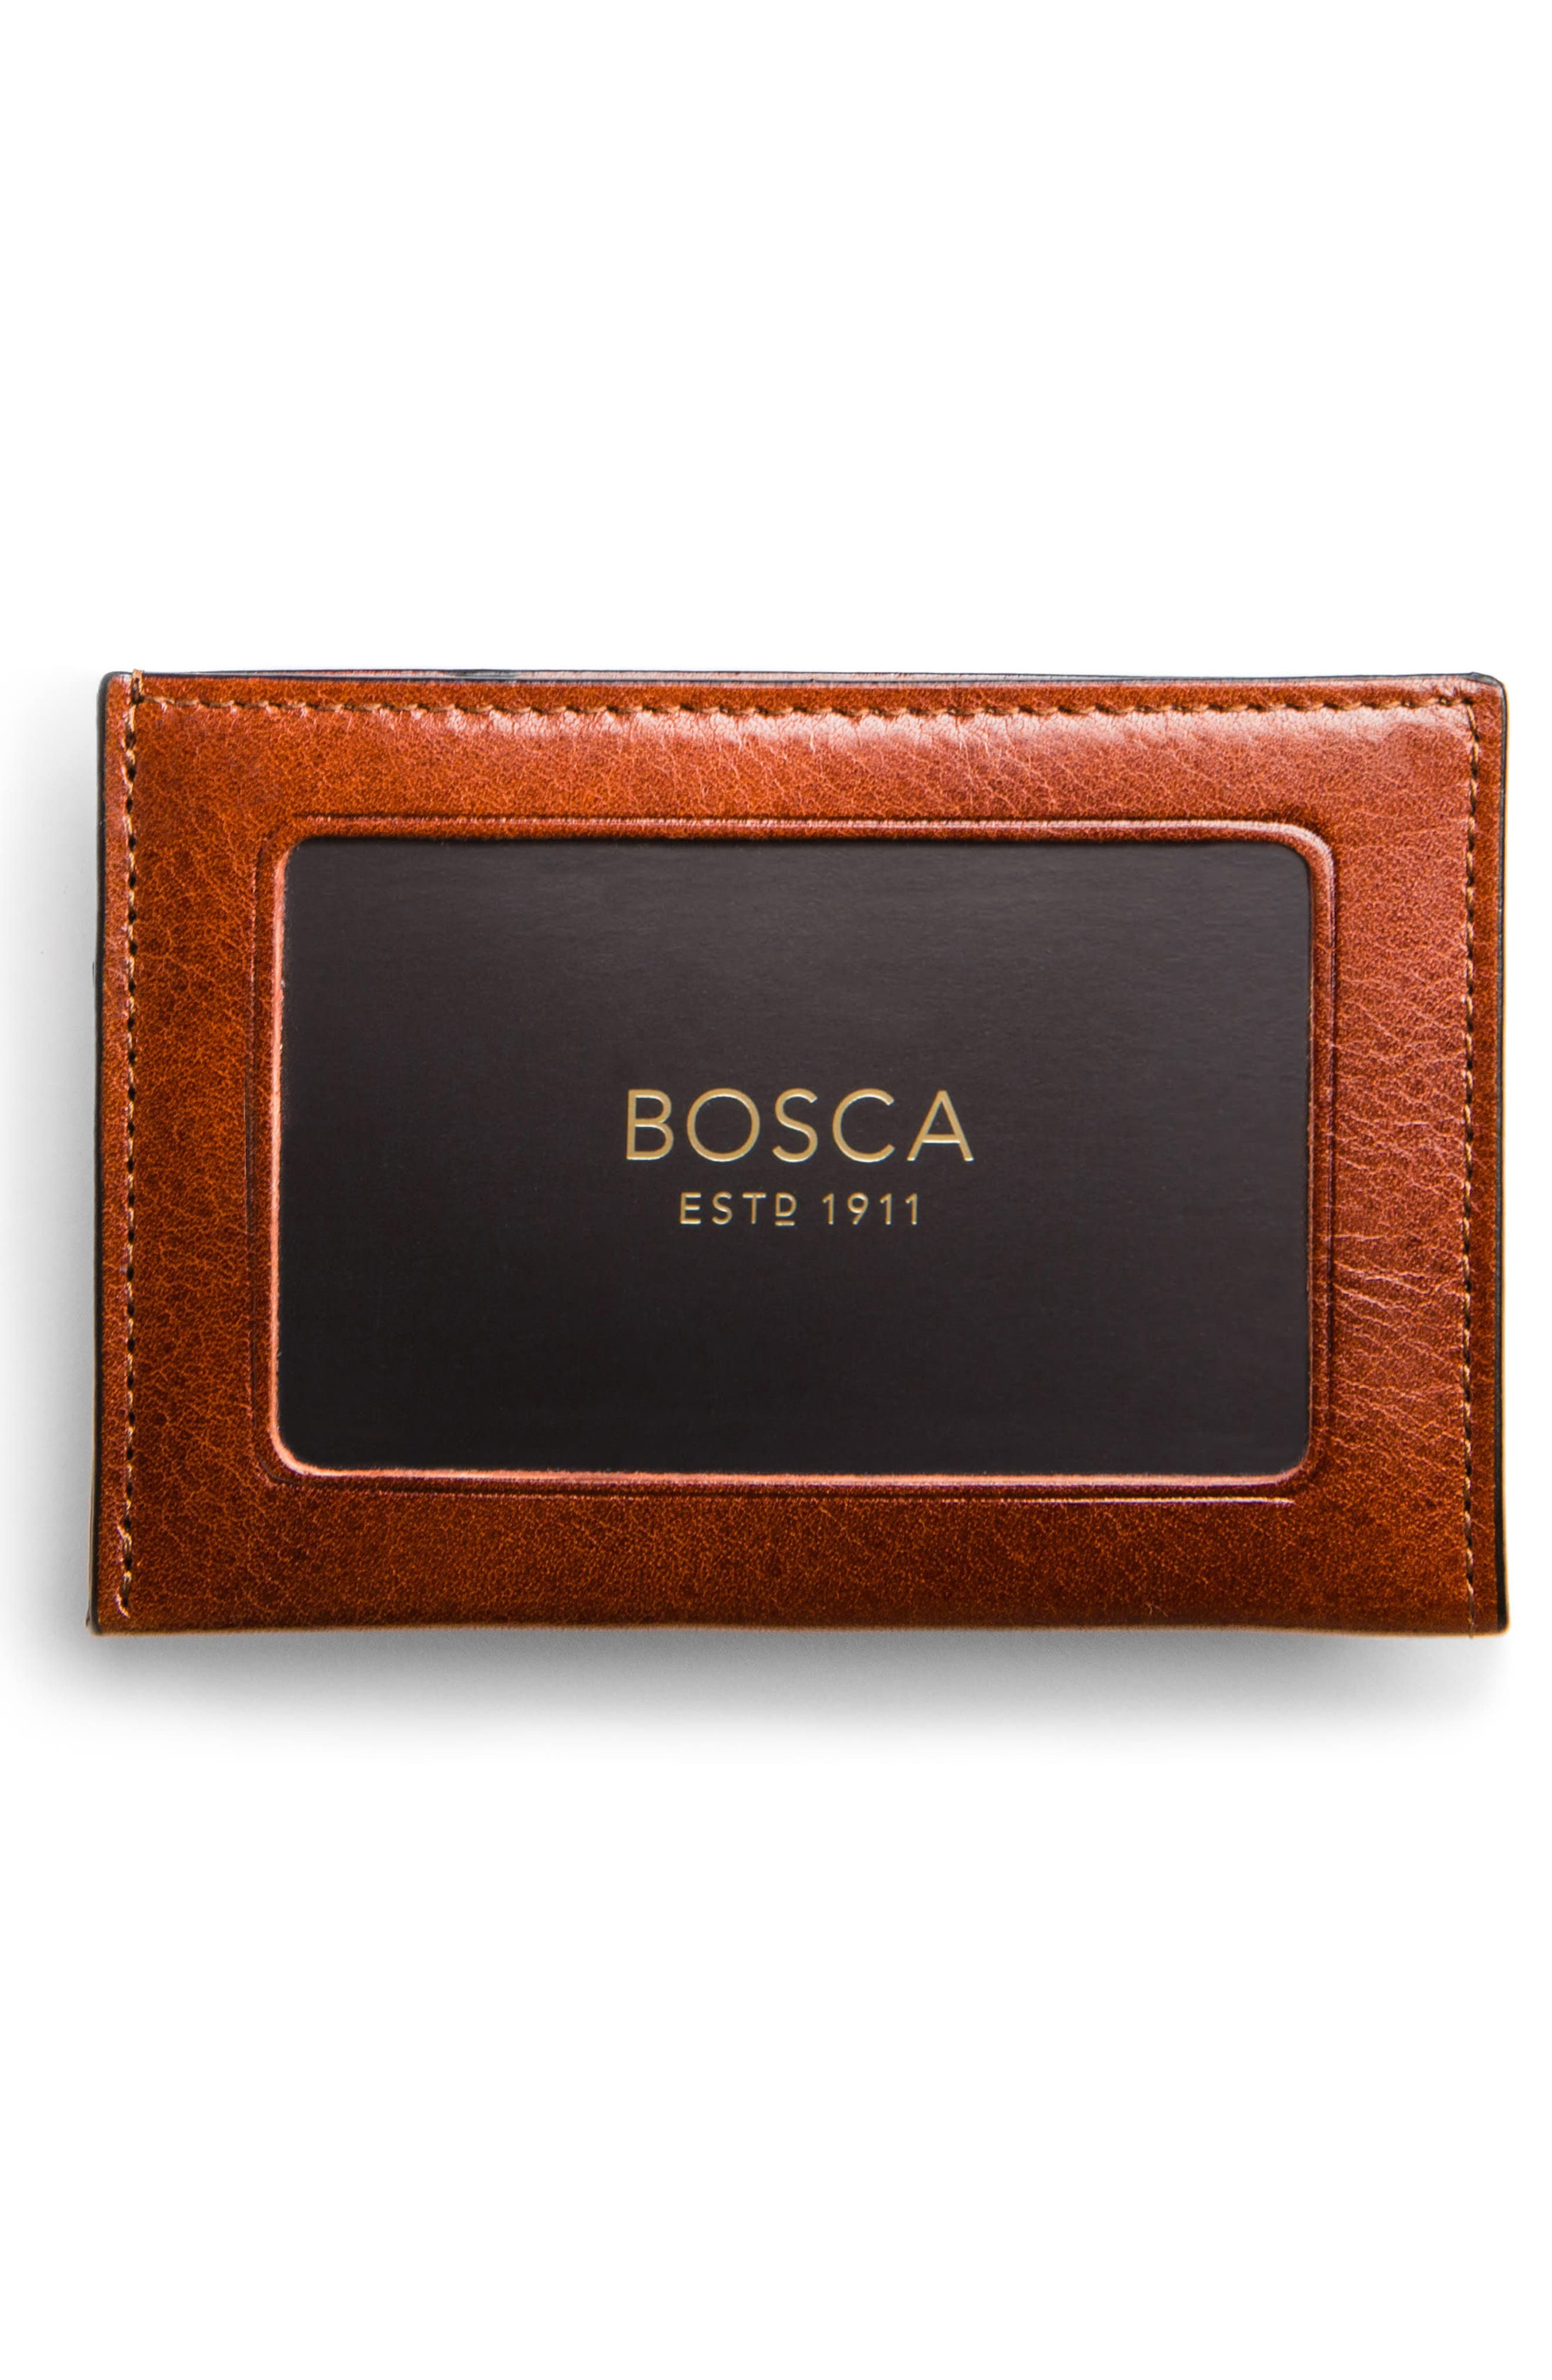 BOSCA Aged Leather Wallet